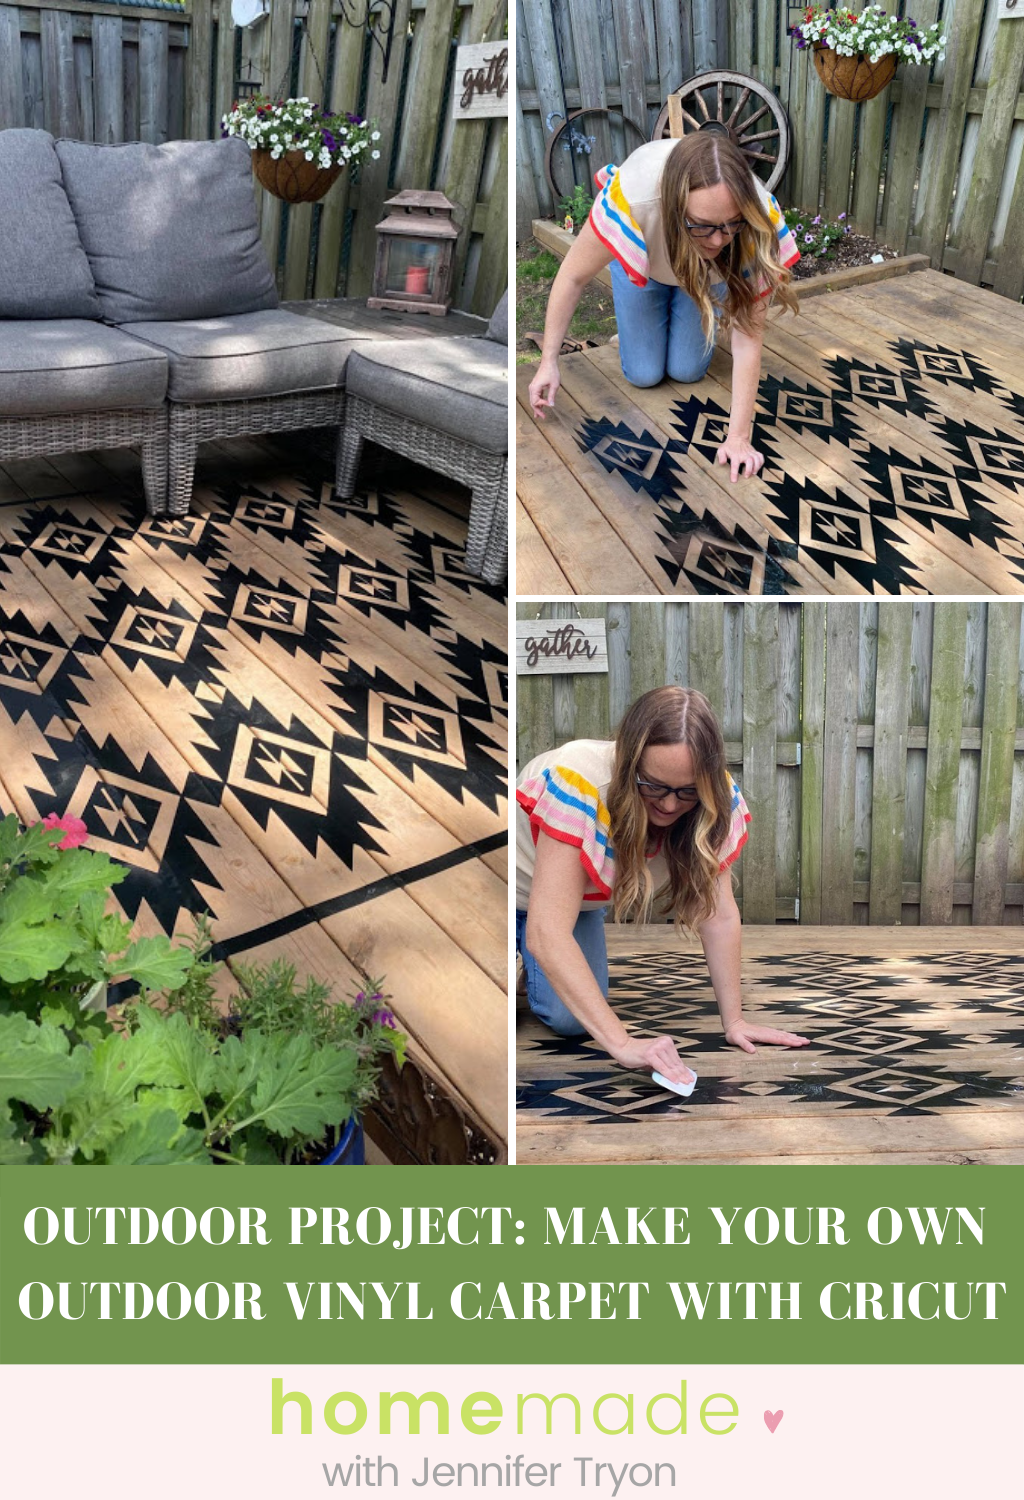 outdoor project make your own outdoor vinyl carpet with cricut